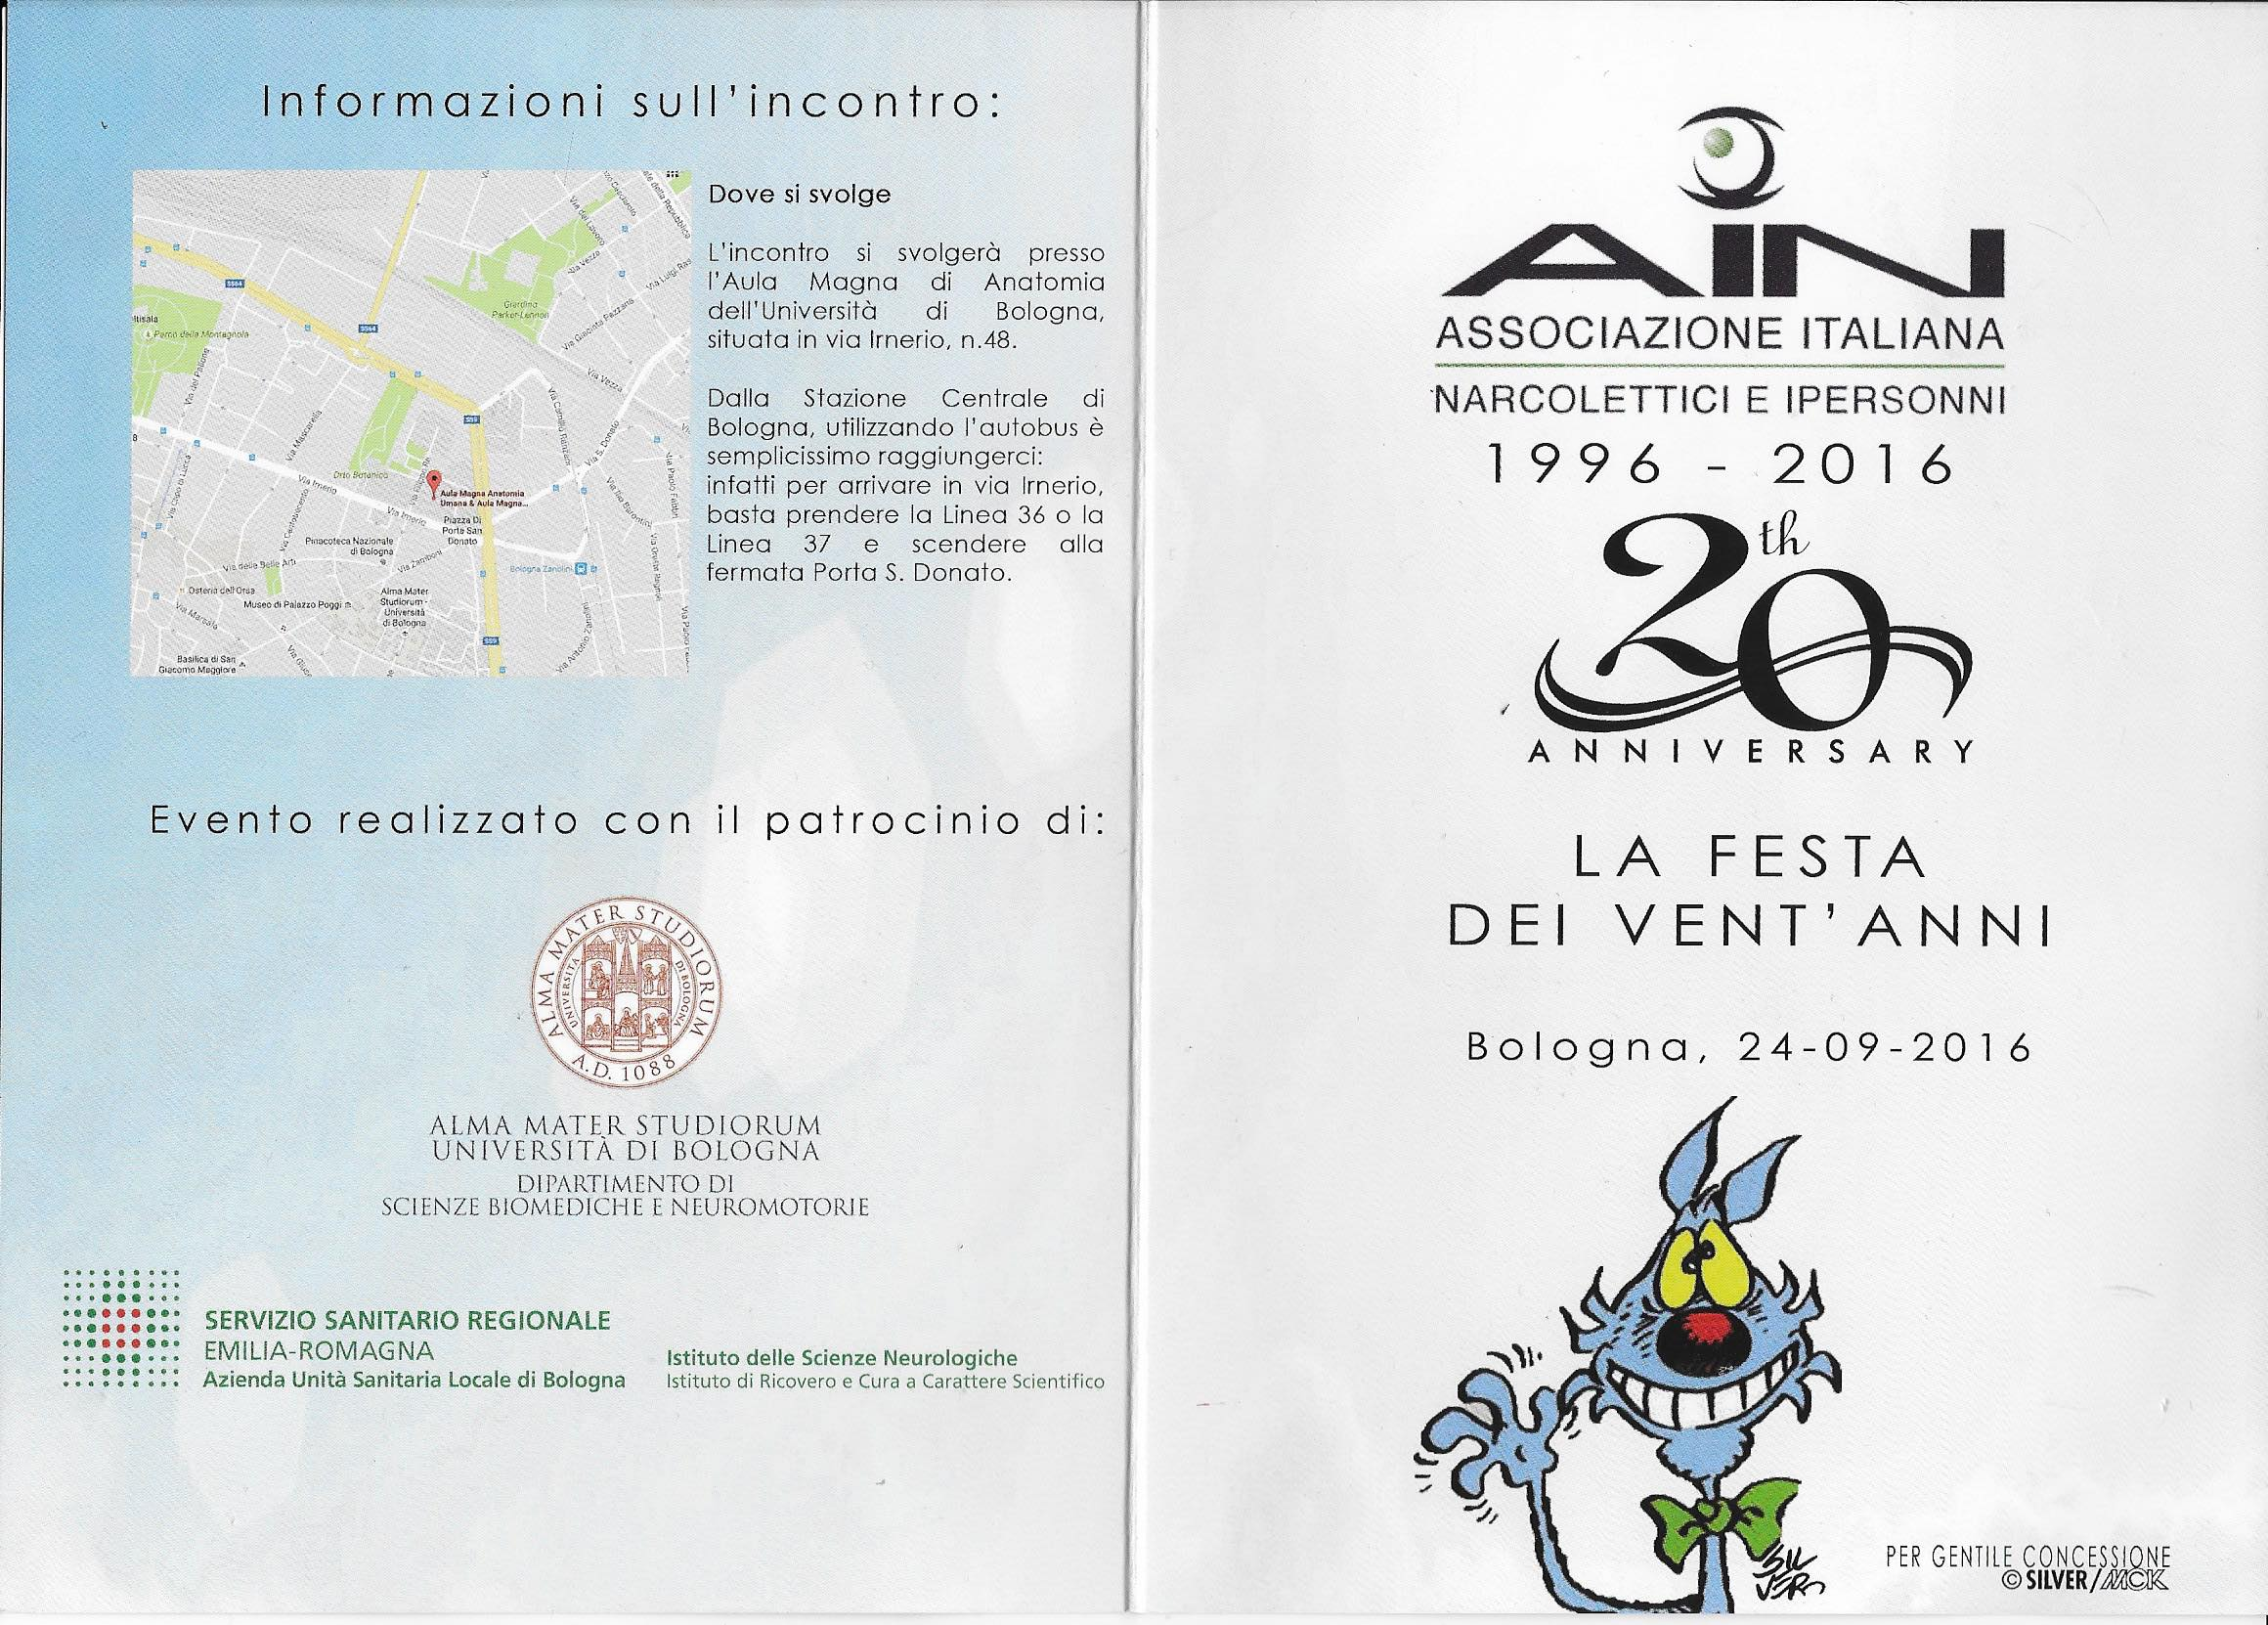 italian-narcolepsy-conference-program-front-and-back